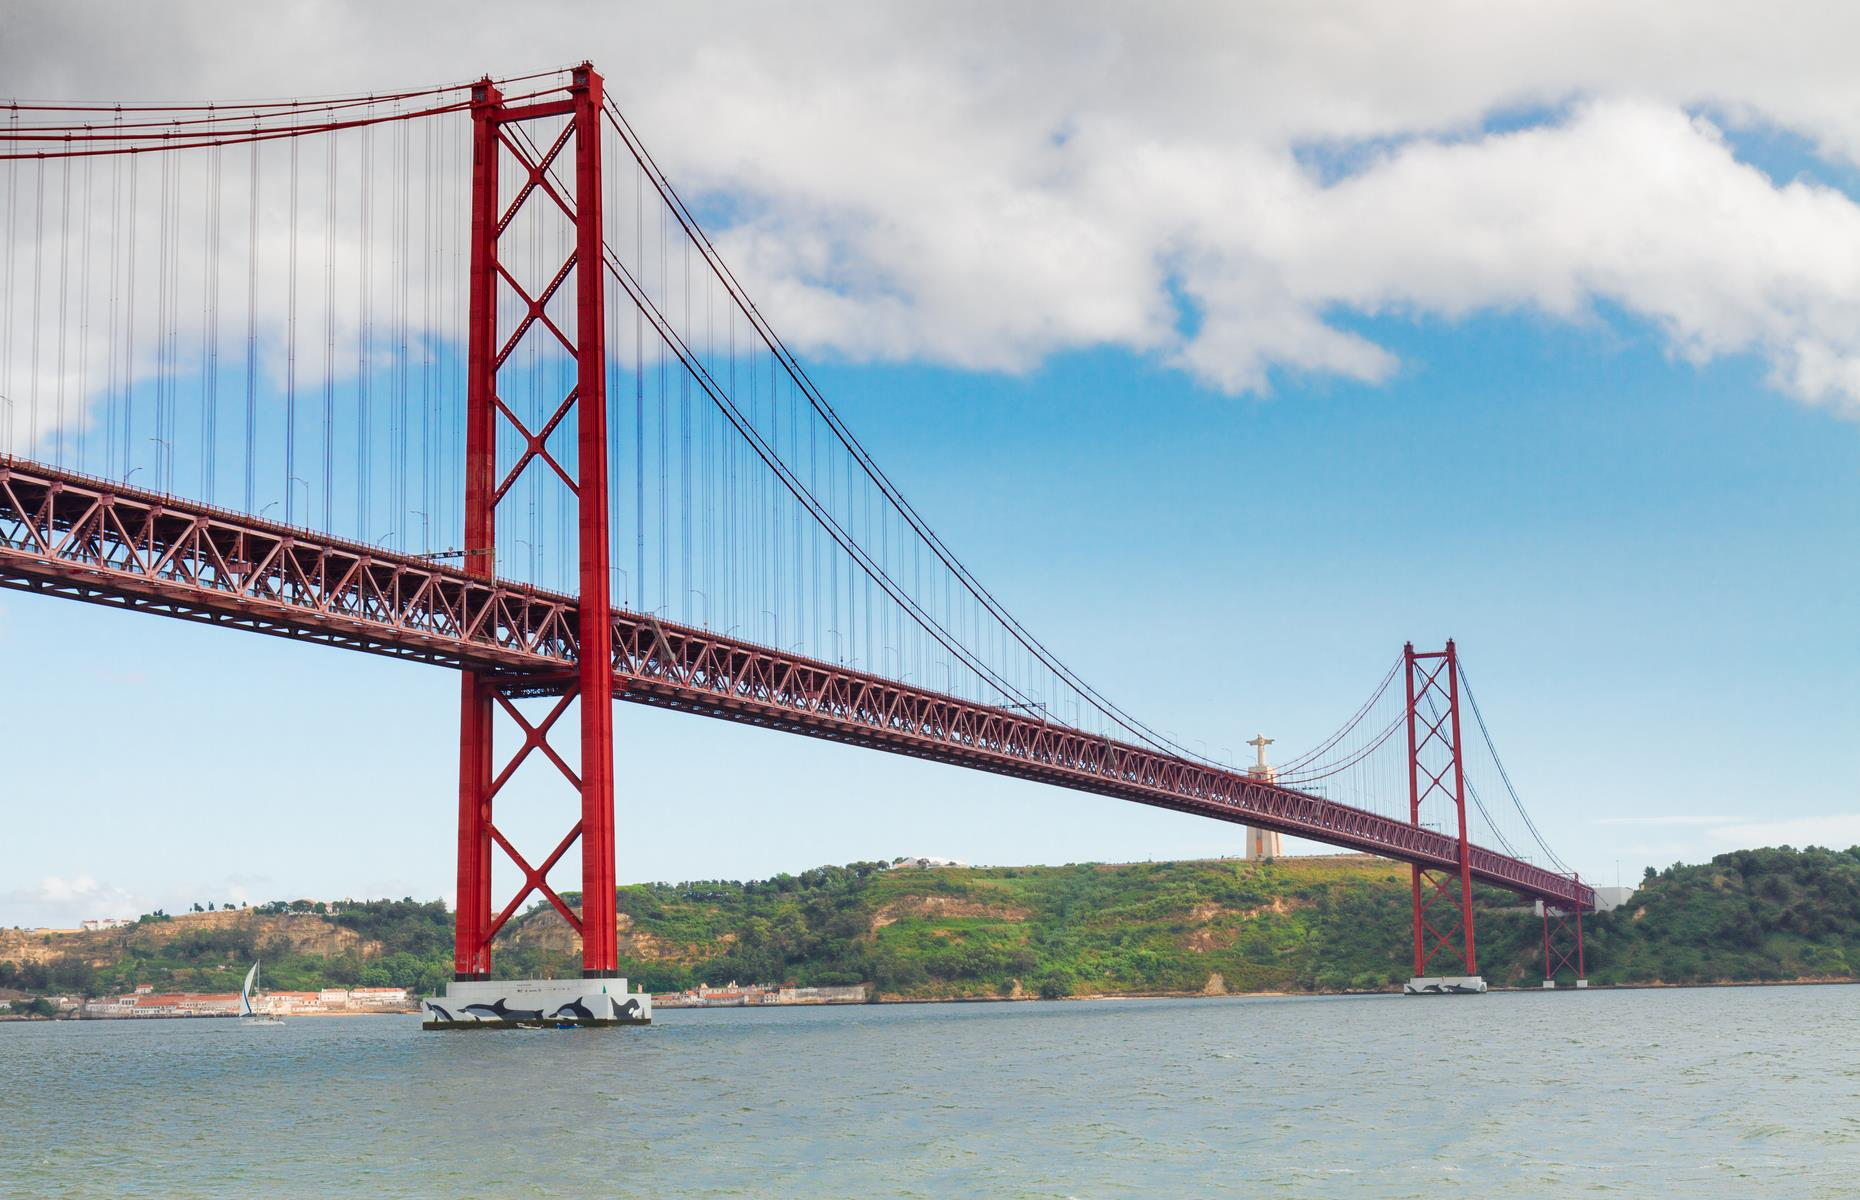 Slide 9 of 37: In Portugal's capital, Lisbon, you'll find a similar-looking bridge known as the 25 de Abril Bridge (Ponte de 25 Abril), one of the city's most well-known landmarks. Although it resemblesthe Golden Gatewith its similar striking exterior, the 25 de Abrilwas actually constructedby the American Bridge Company in 1966, the same company that built the San Francisco-Oakland Bay Bridge, not the Golden Gate.